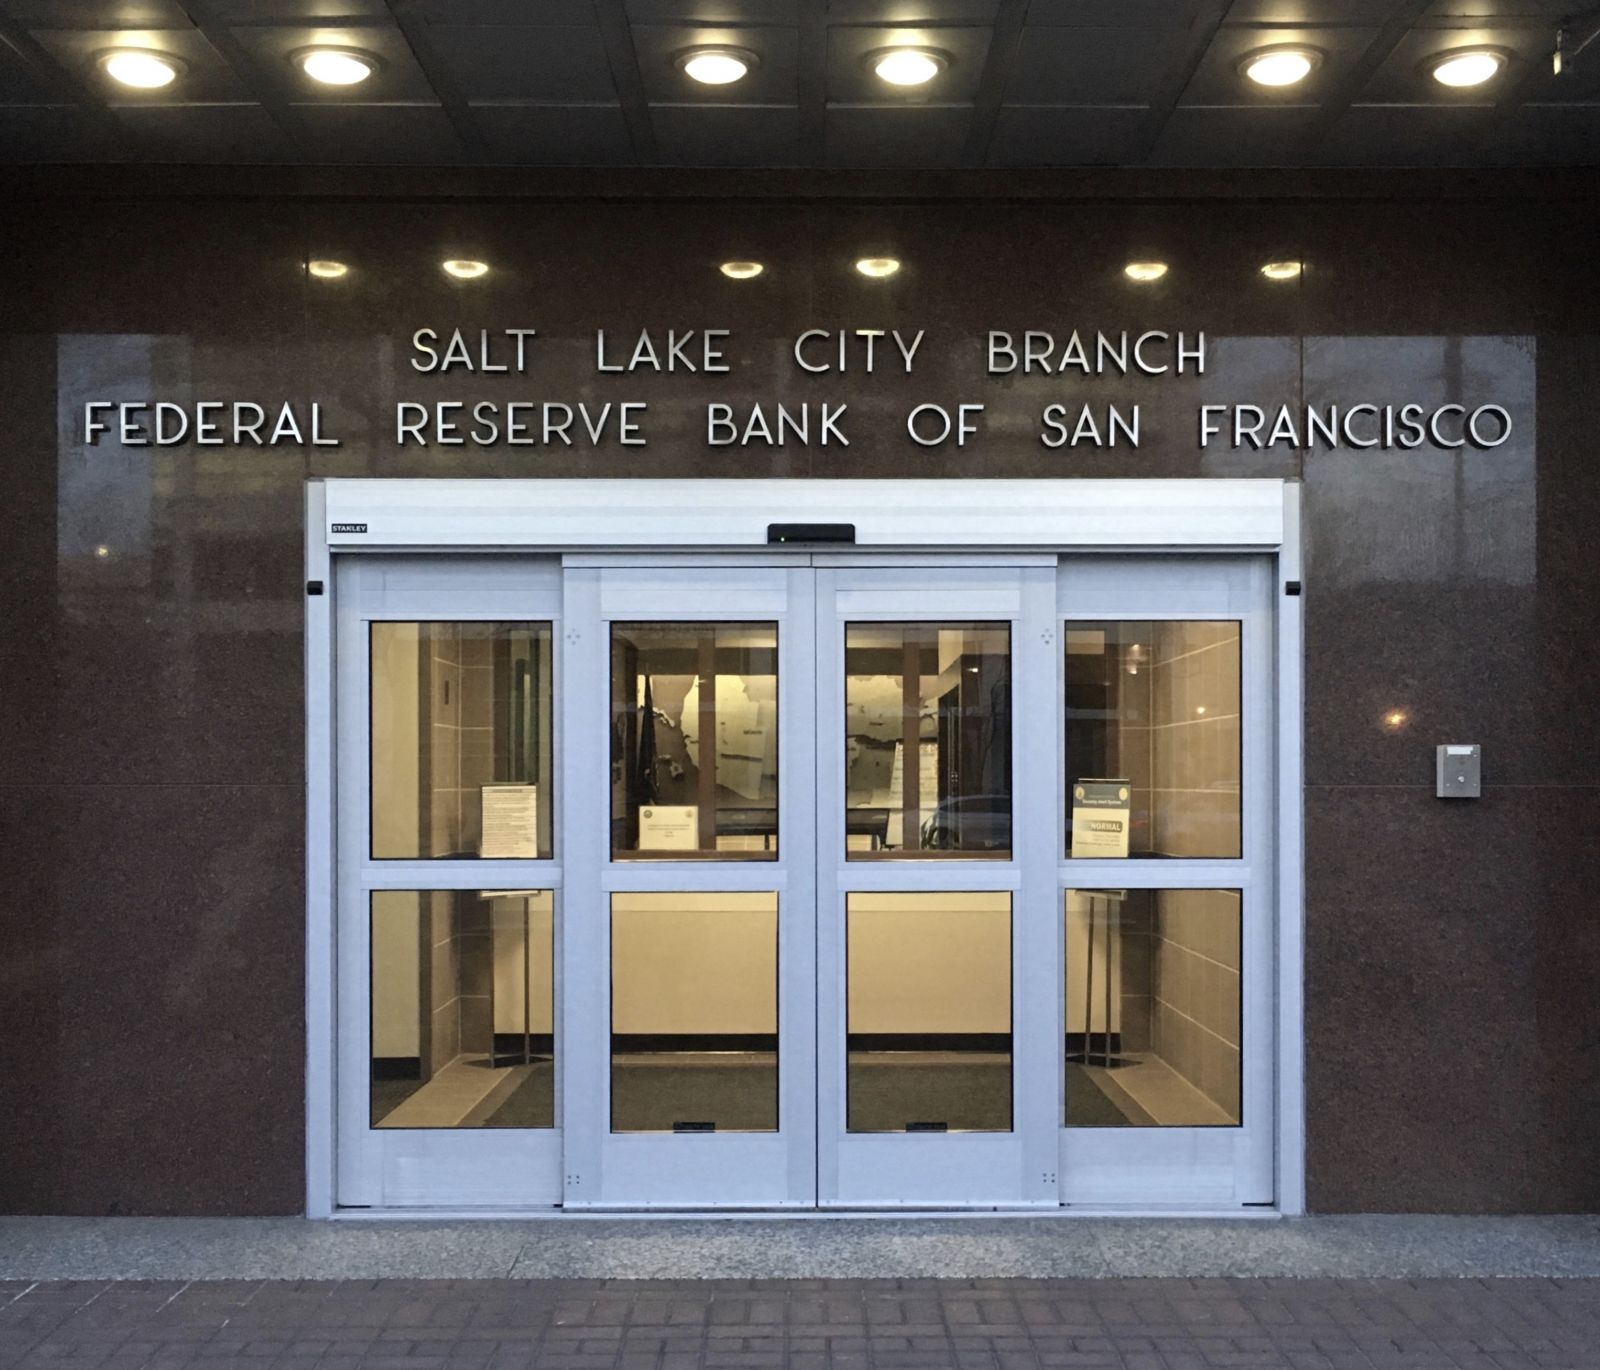 Salt Lake City Branch Federal Reserve Bank of San Francisco | Flickr - Photo Sharing!